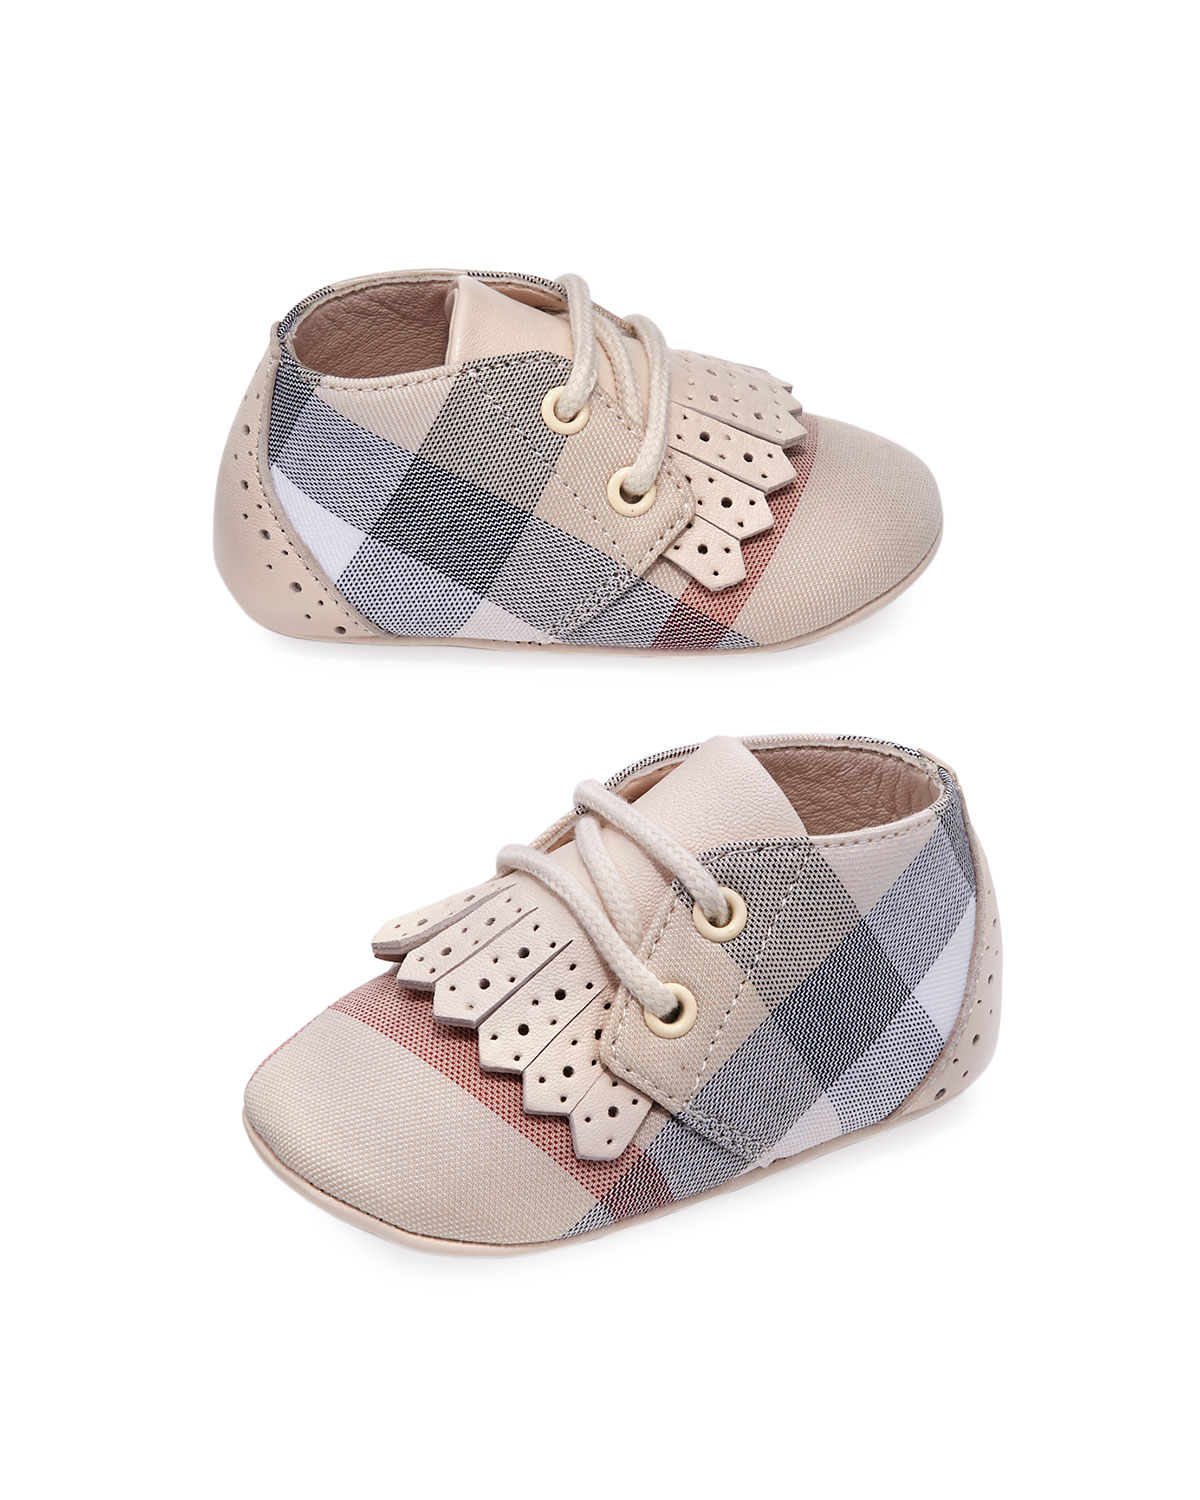 Boys Tom Check Shoes w Perforated Leather Trim Newborn12 Months